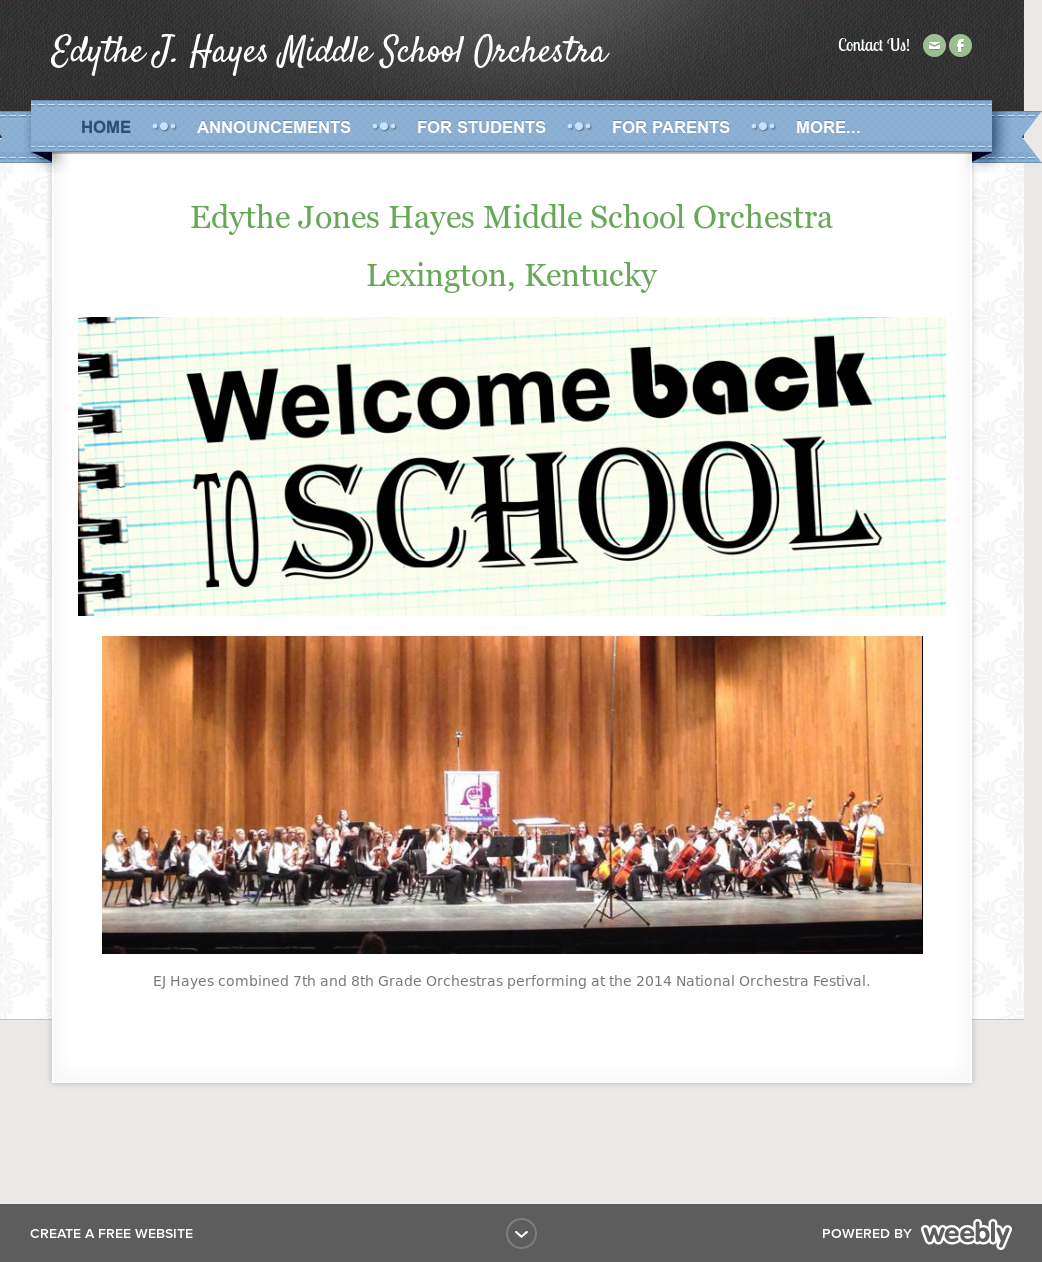 Edythe J Hayes Middle School Orchestra Competitors, Revenue